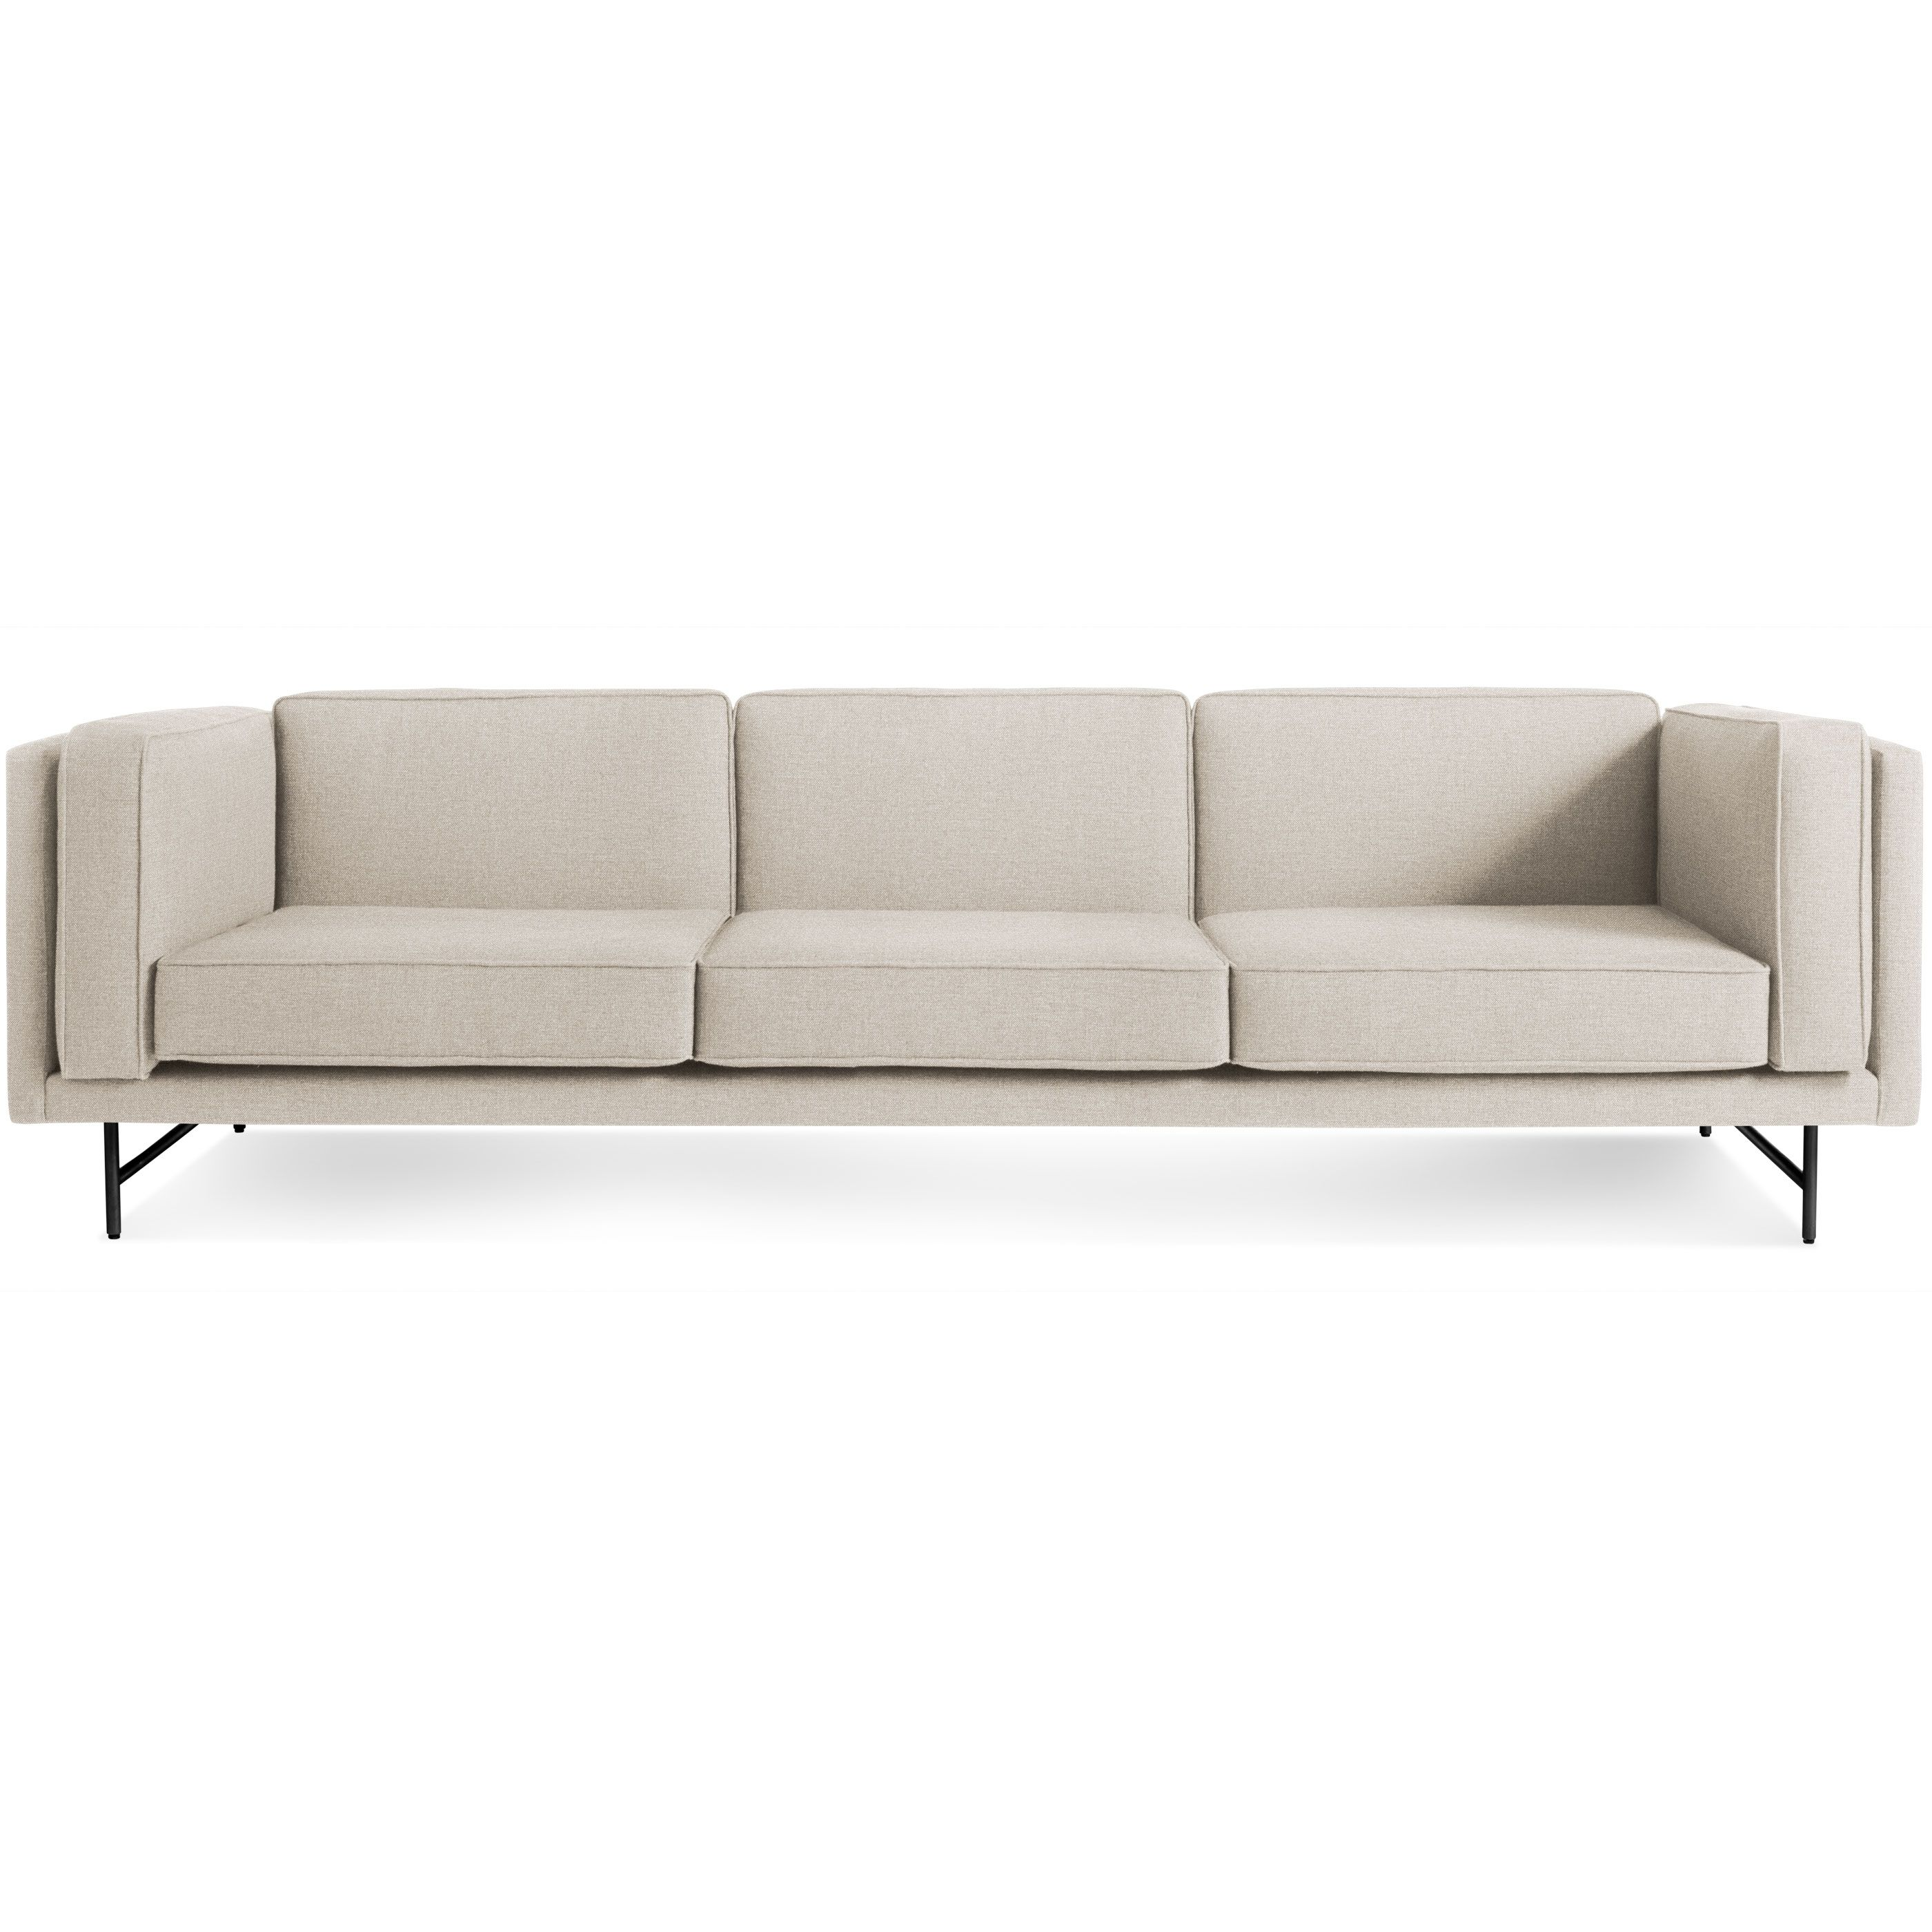 Bank 96 Deep Seat Sofa  Low Pro Sofa -